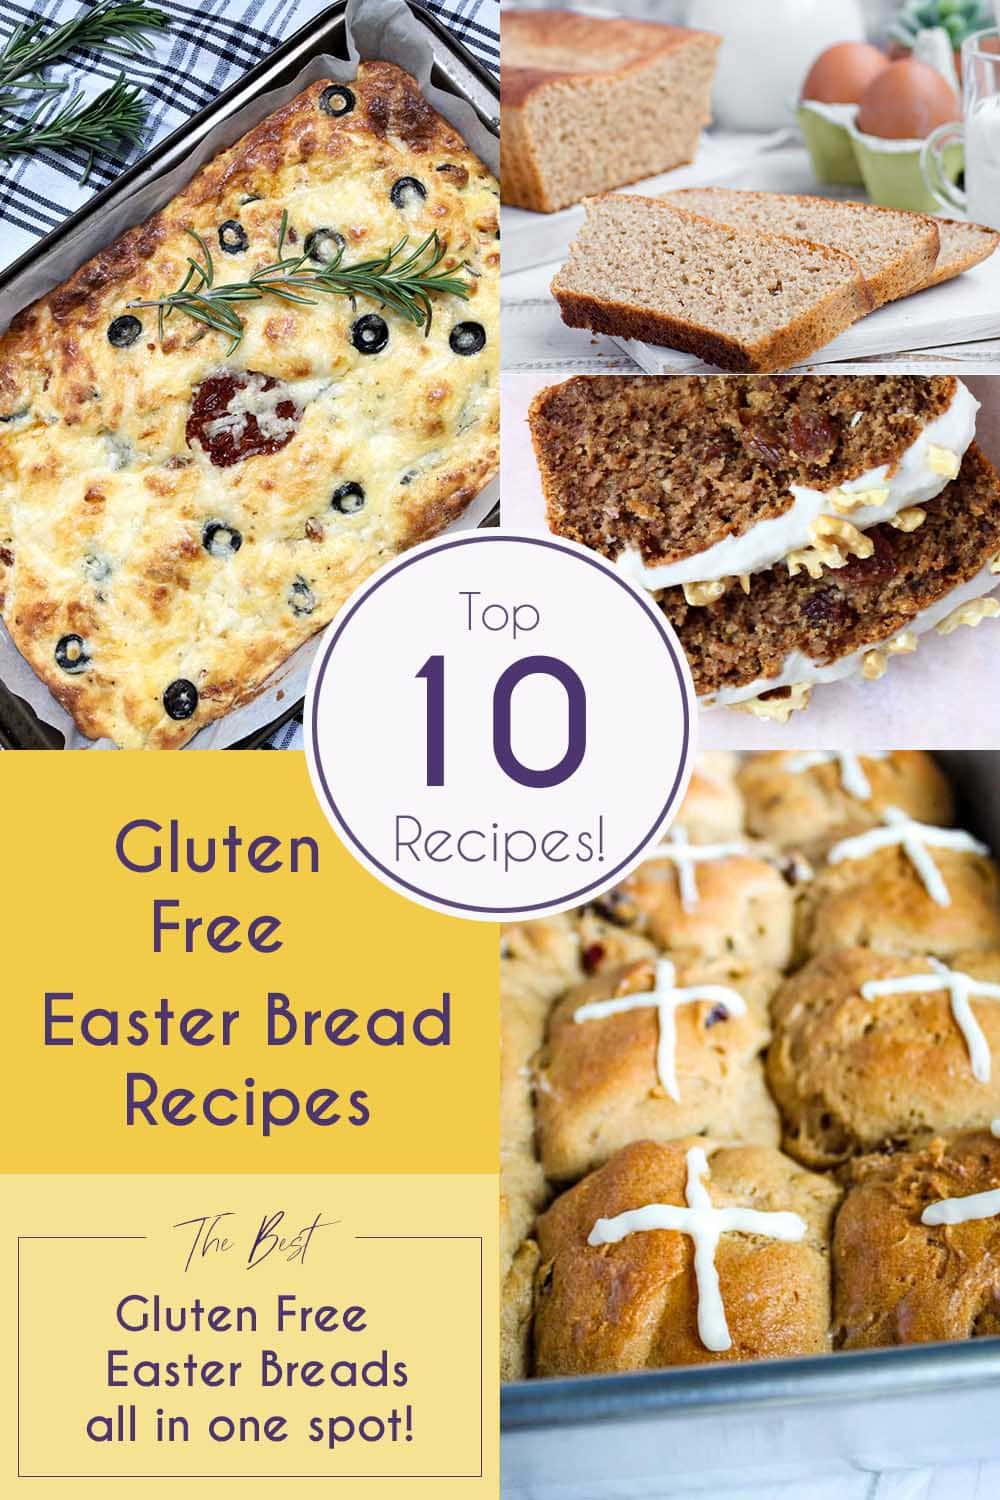 Top 10 Gluten Free Easter Bread Recipes!